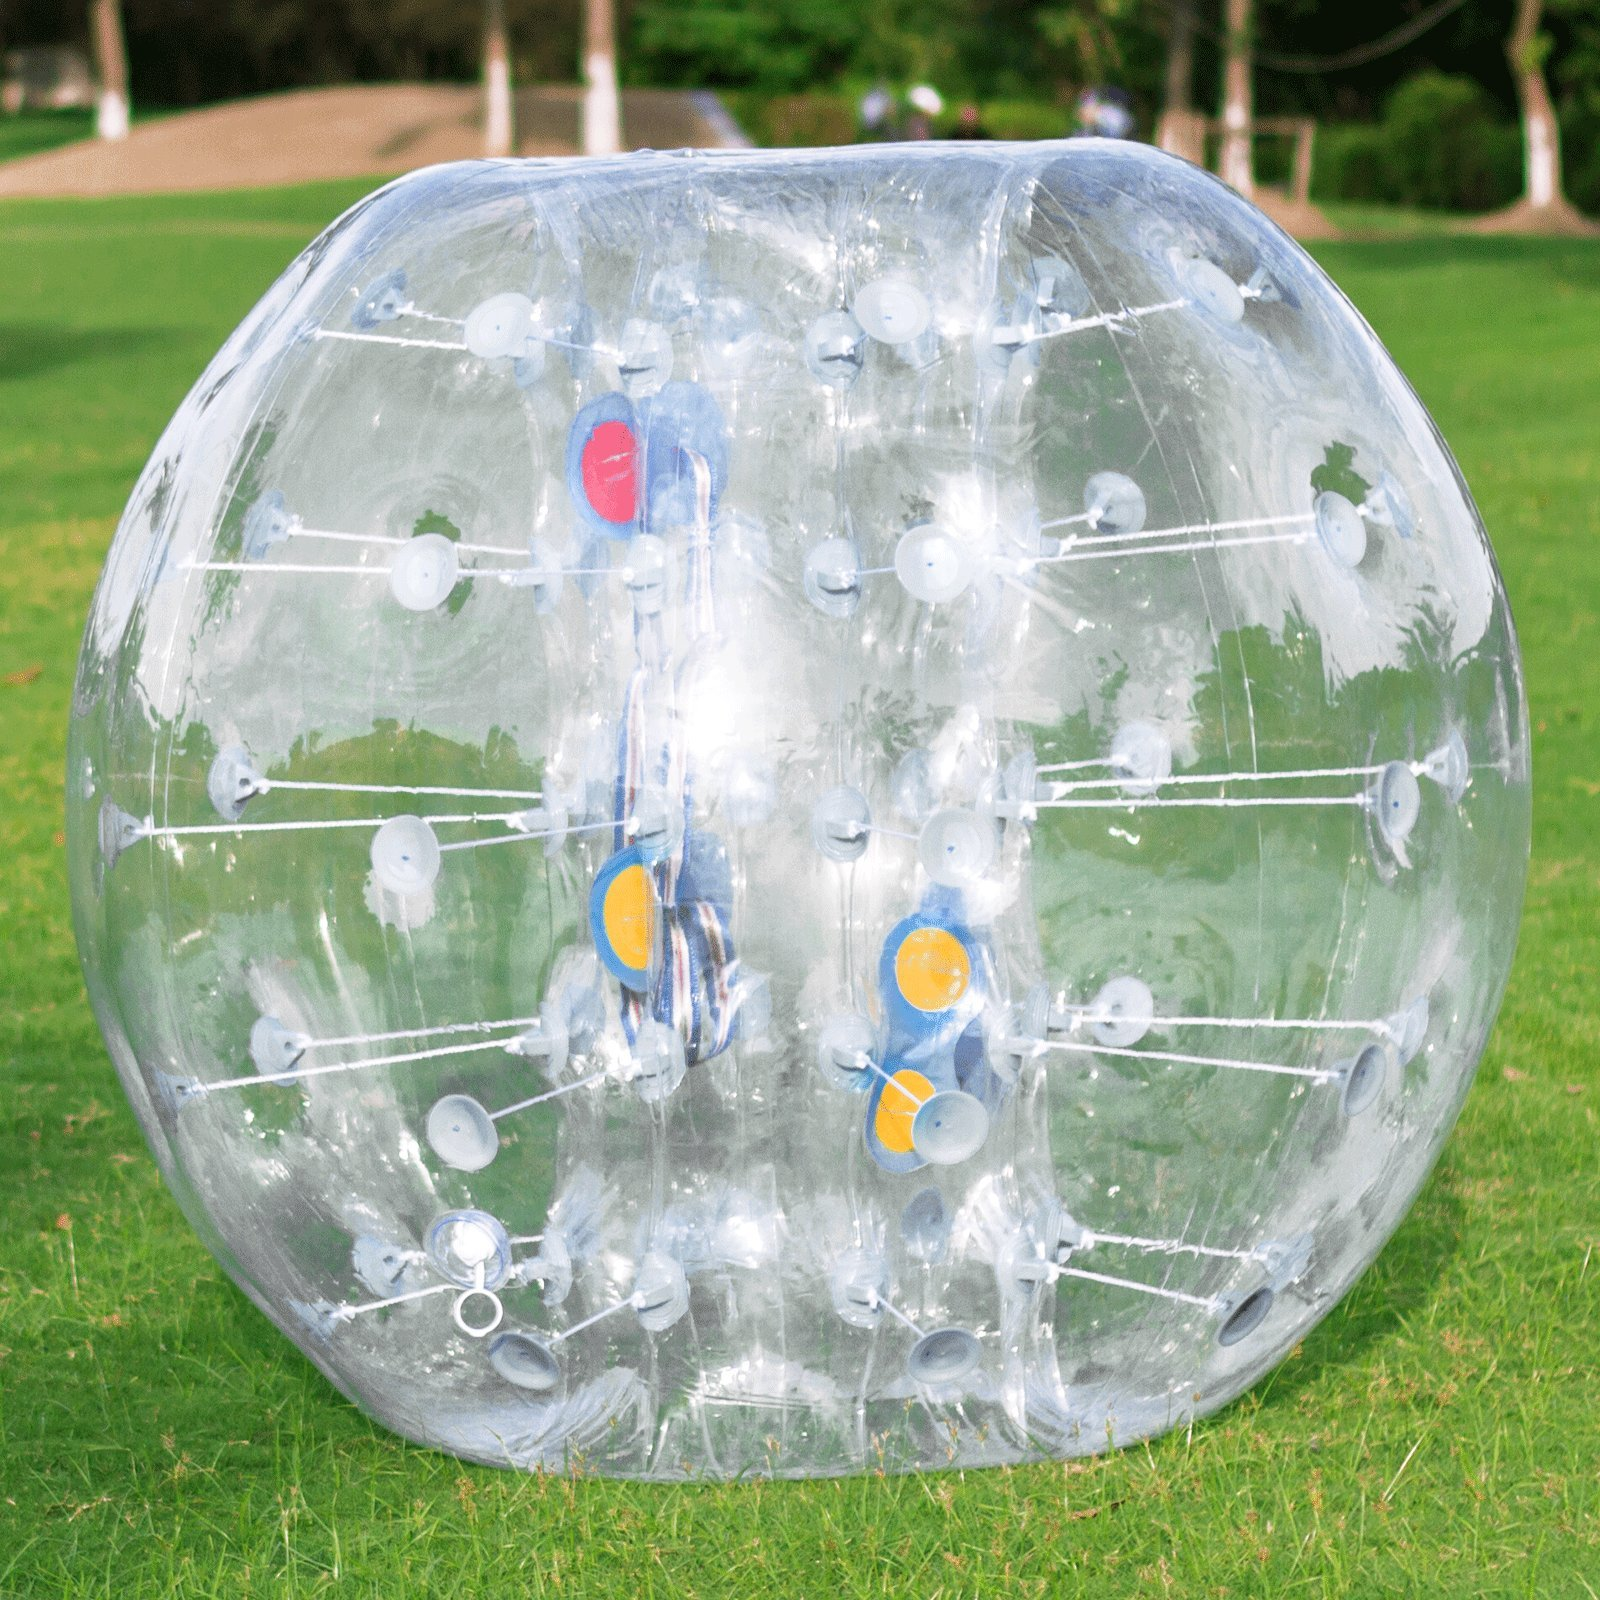 Popsport Inflatable Bumper Ball 4FT/5FT Bubble Soccer Ball 0.8mm Eco-Friendly PVC Zorb Ball Human Hamster Ball for Adults and Kids (4FT Transparent) by Popsport